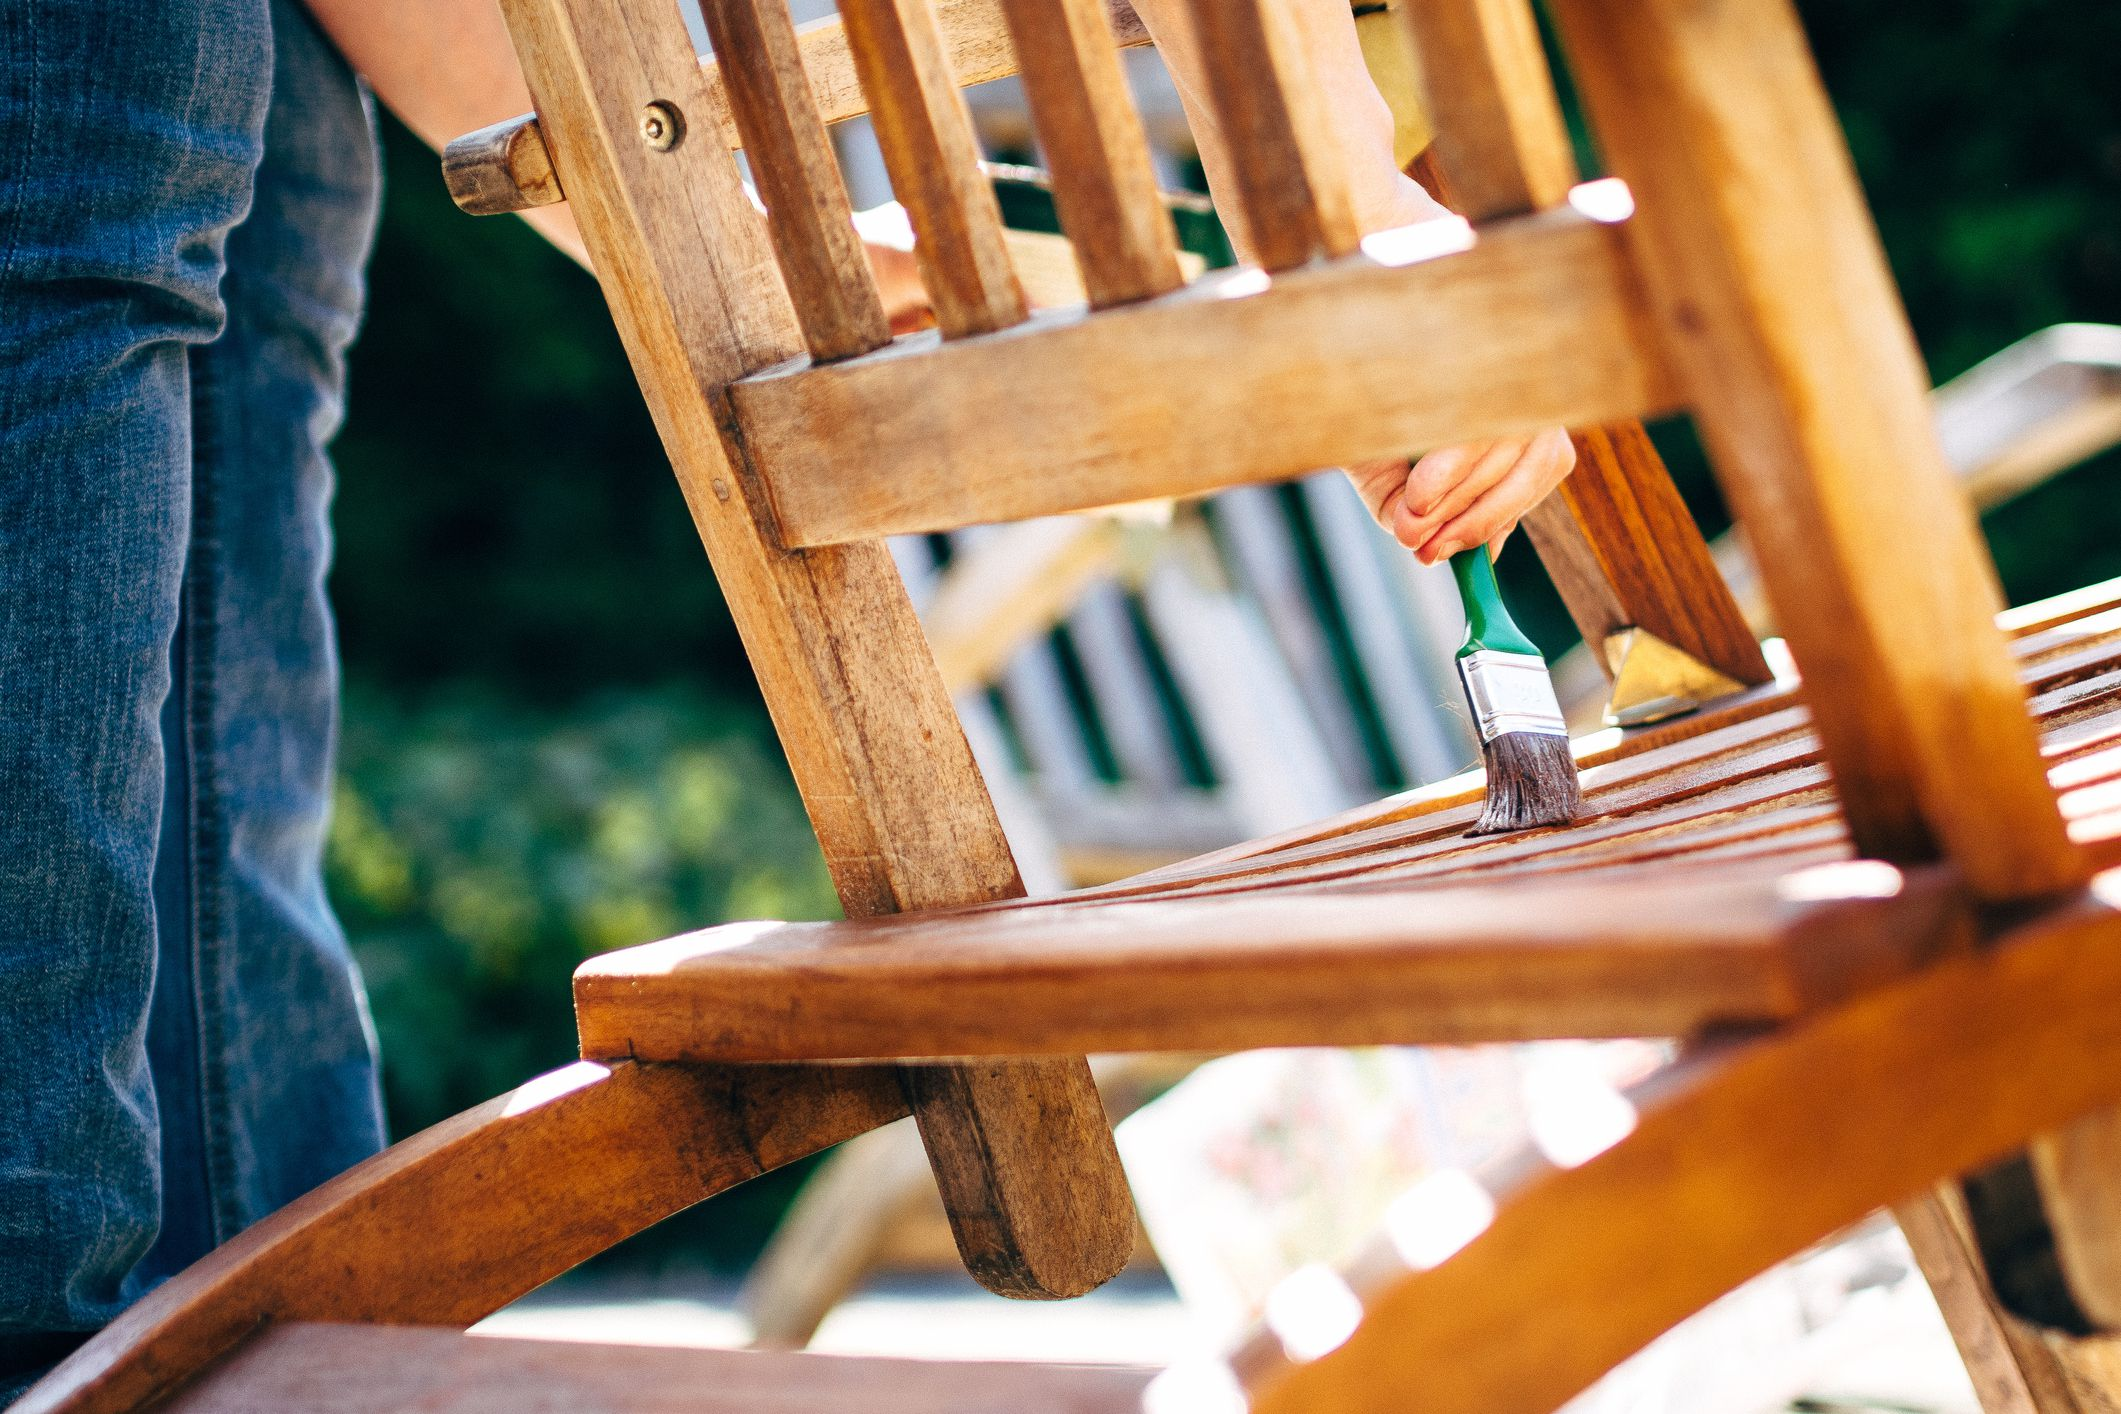 How to Paint Wood Smoothly Like a Professional